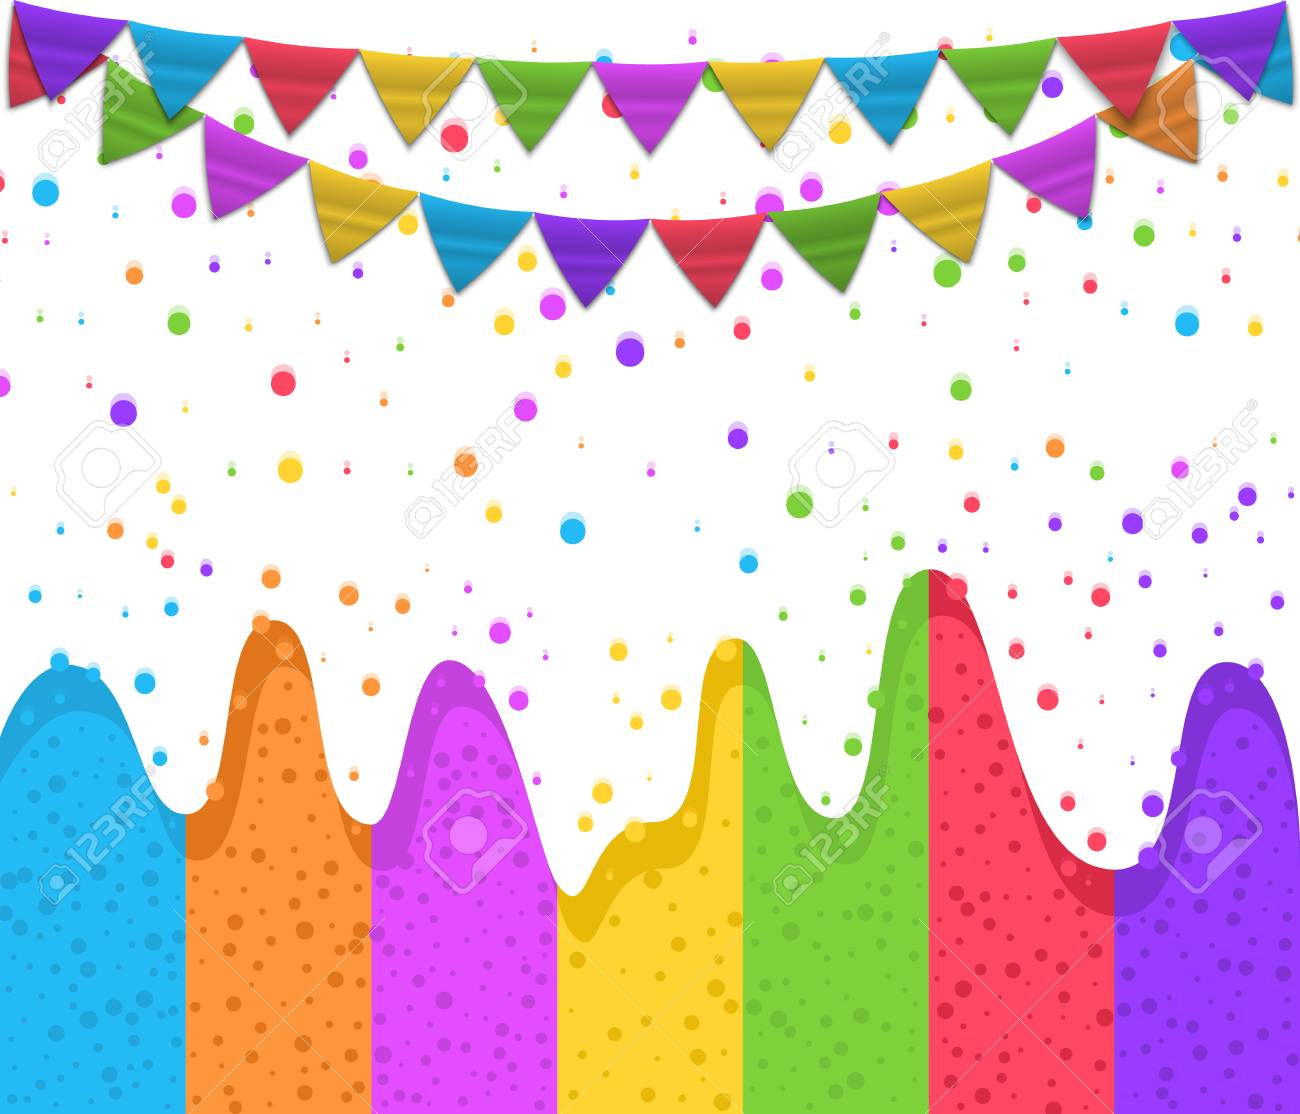 Happy Birthday Typographic Design For Greeting Cards And Posters With Confetti Garland Colorful Ice